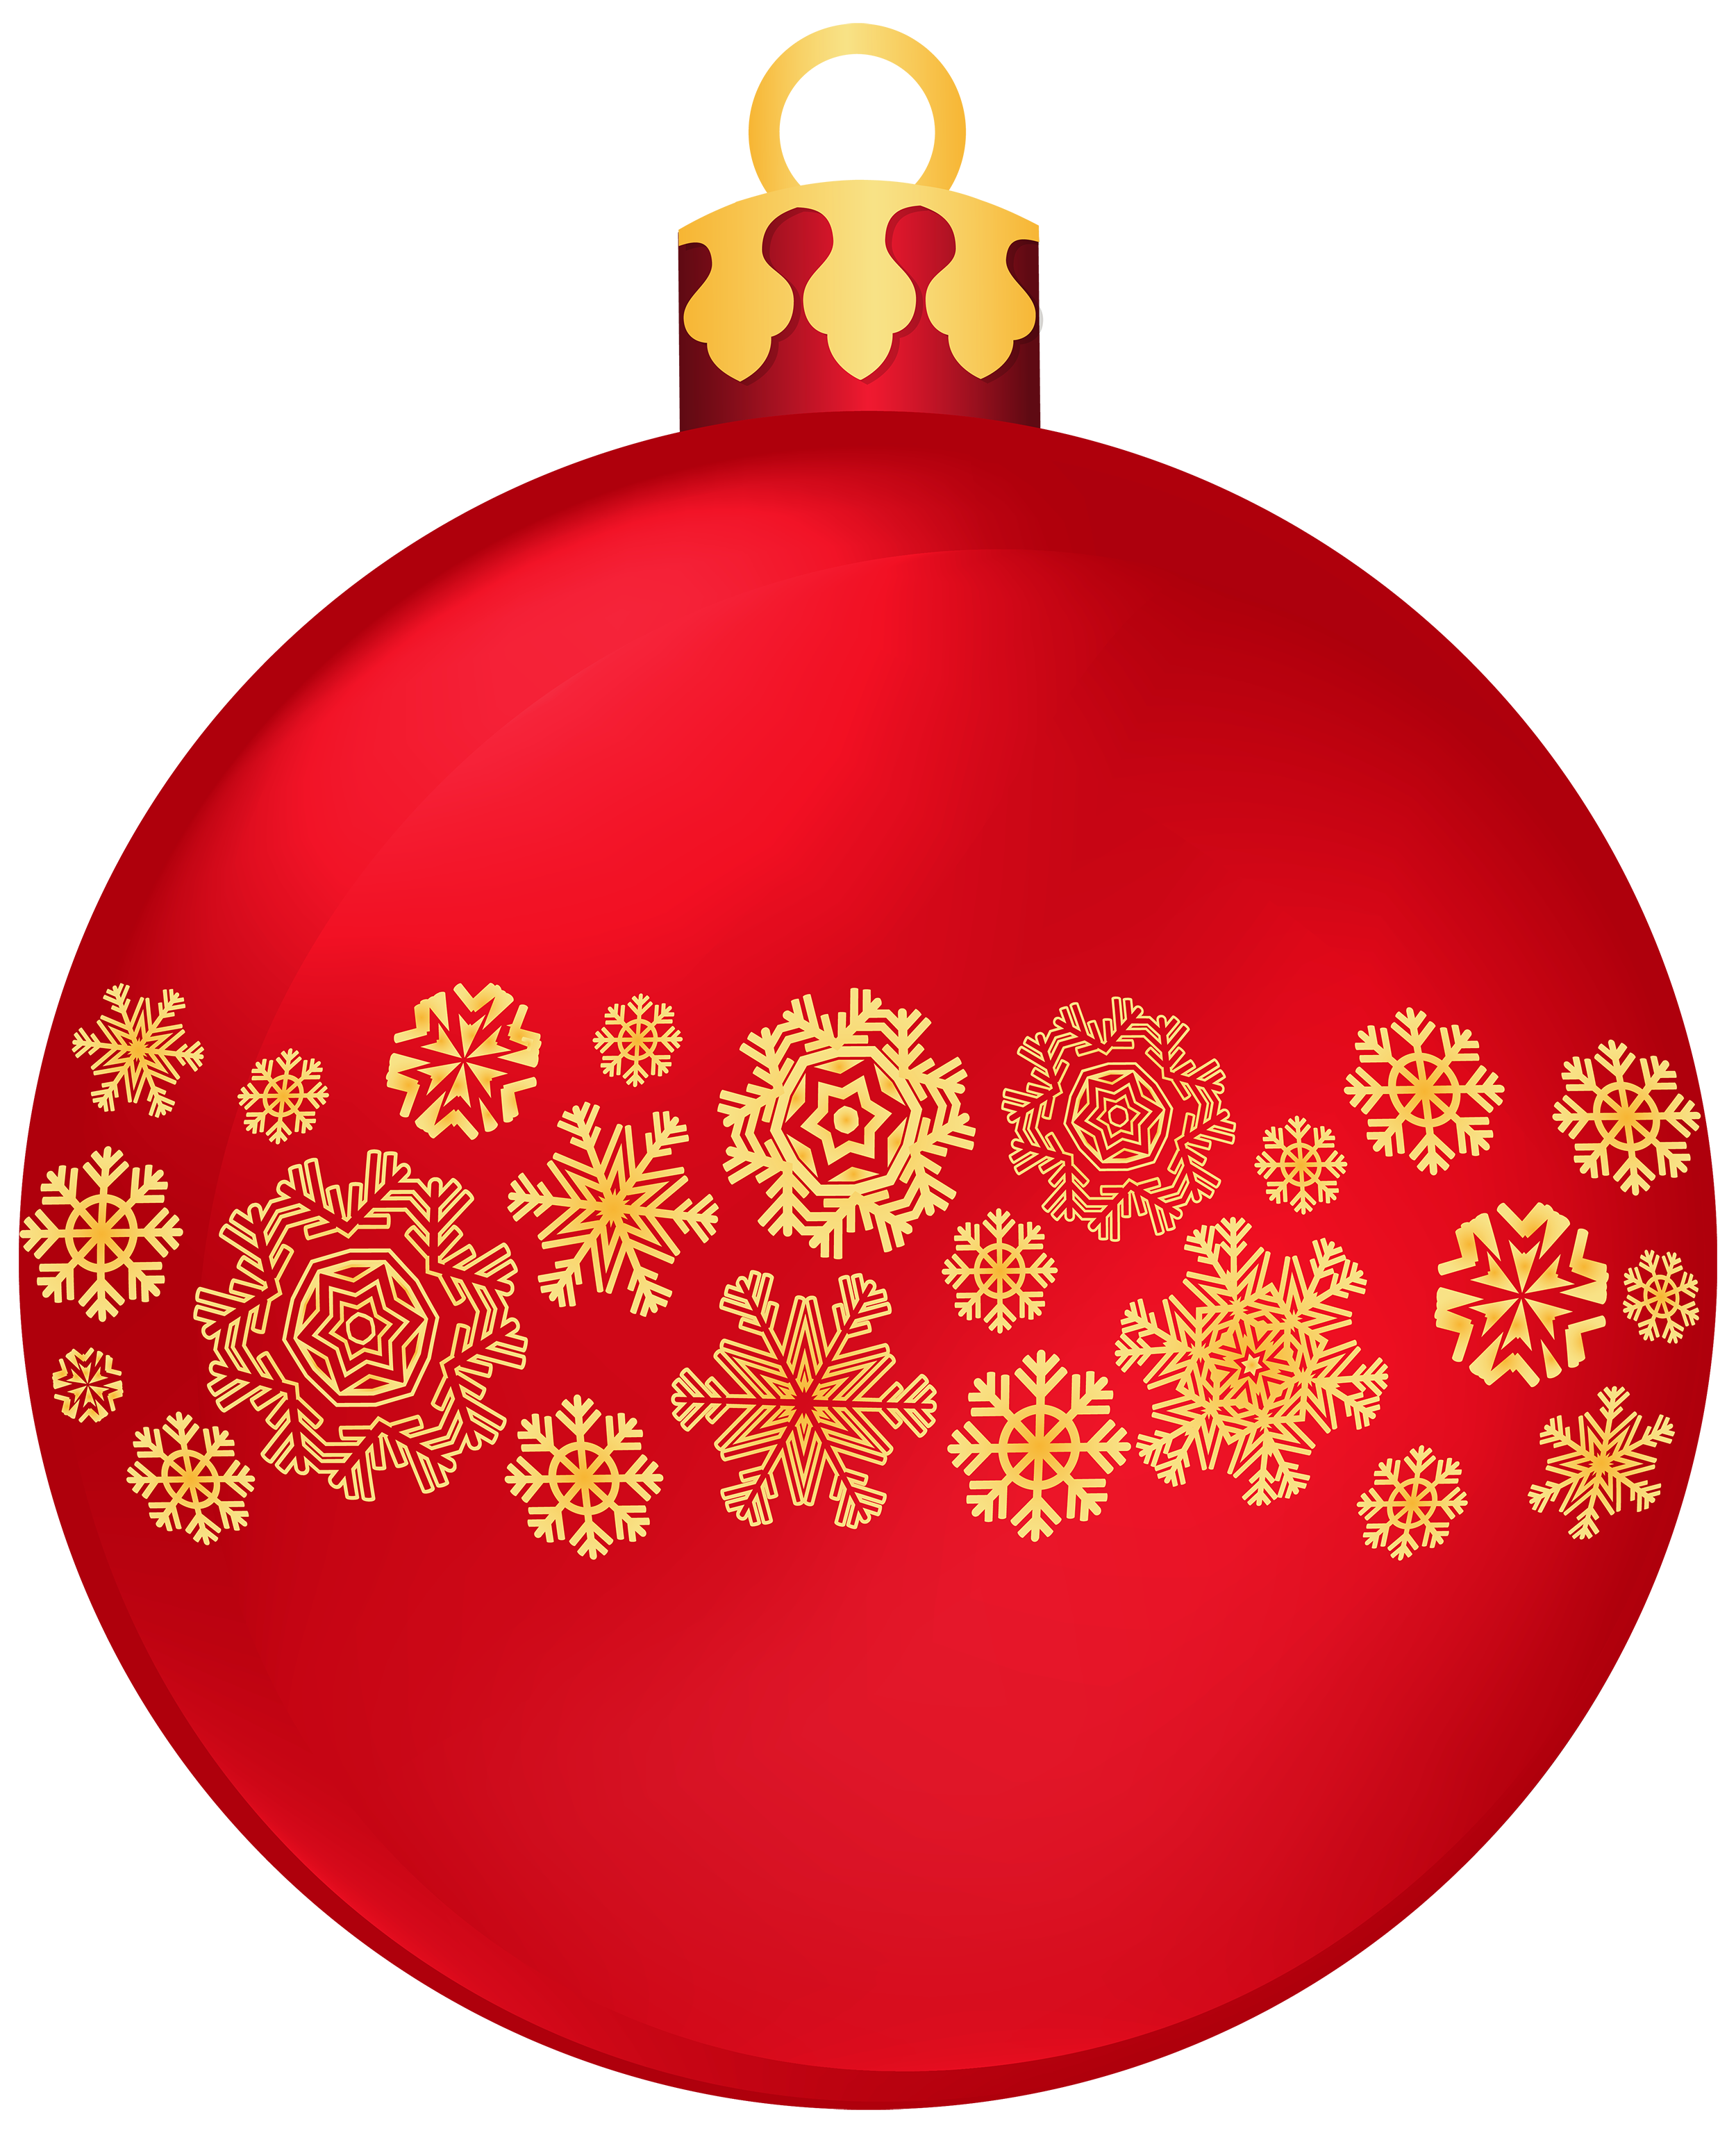 Snowflake art clipart image library stock Red Christmas Ball with Snowflakes PNG Clipart - Best WEB Clipart image library stock